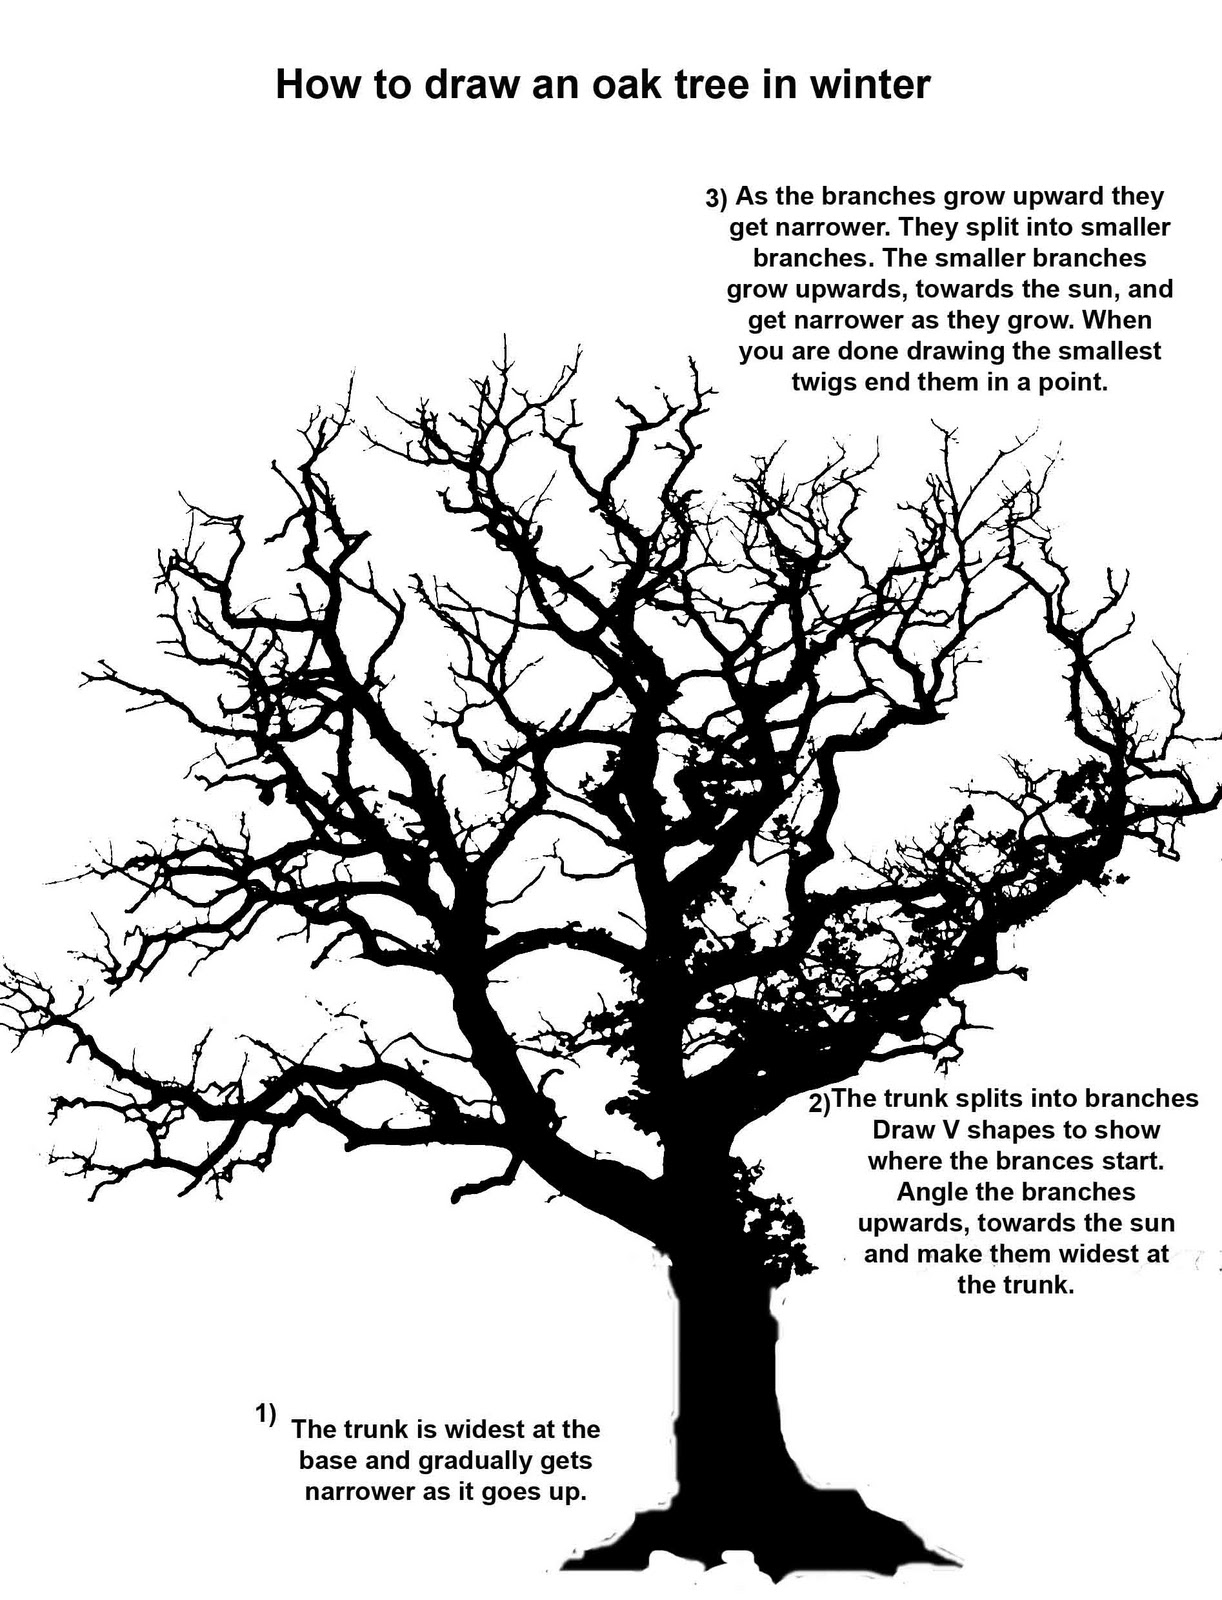 Oak Tree Realistic Clipart To Add To Photoshop